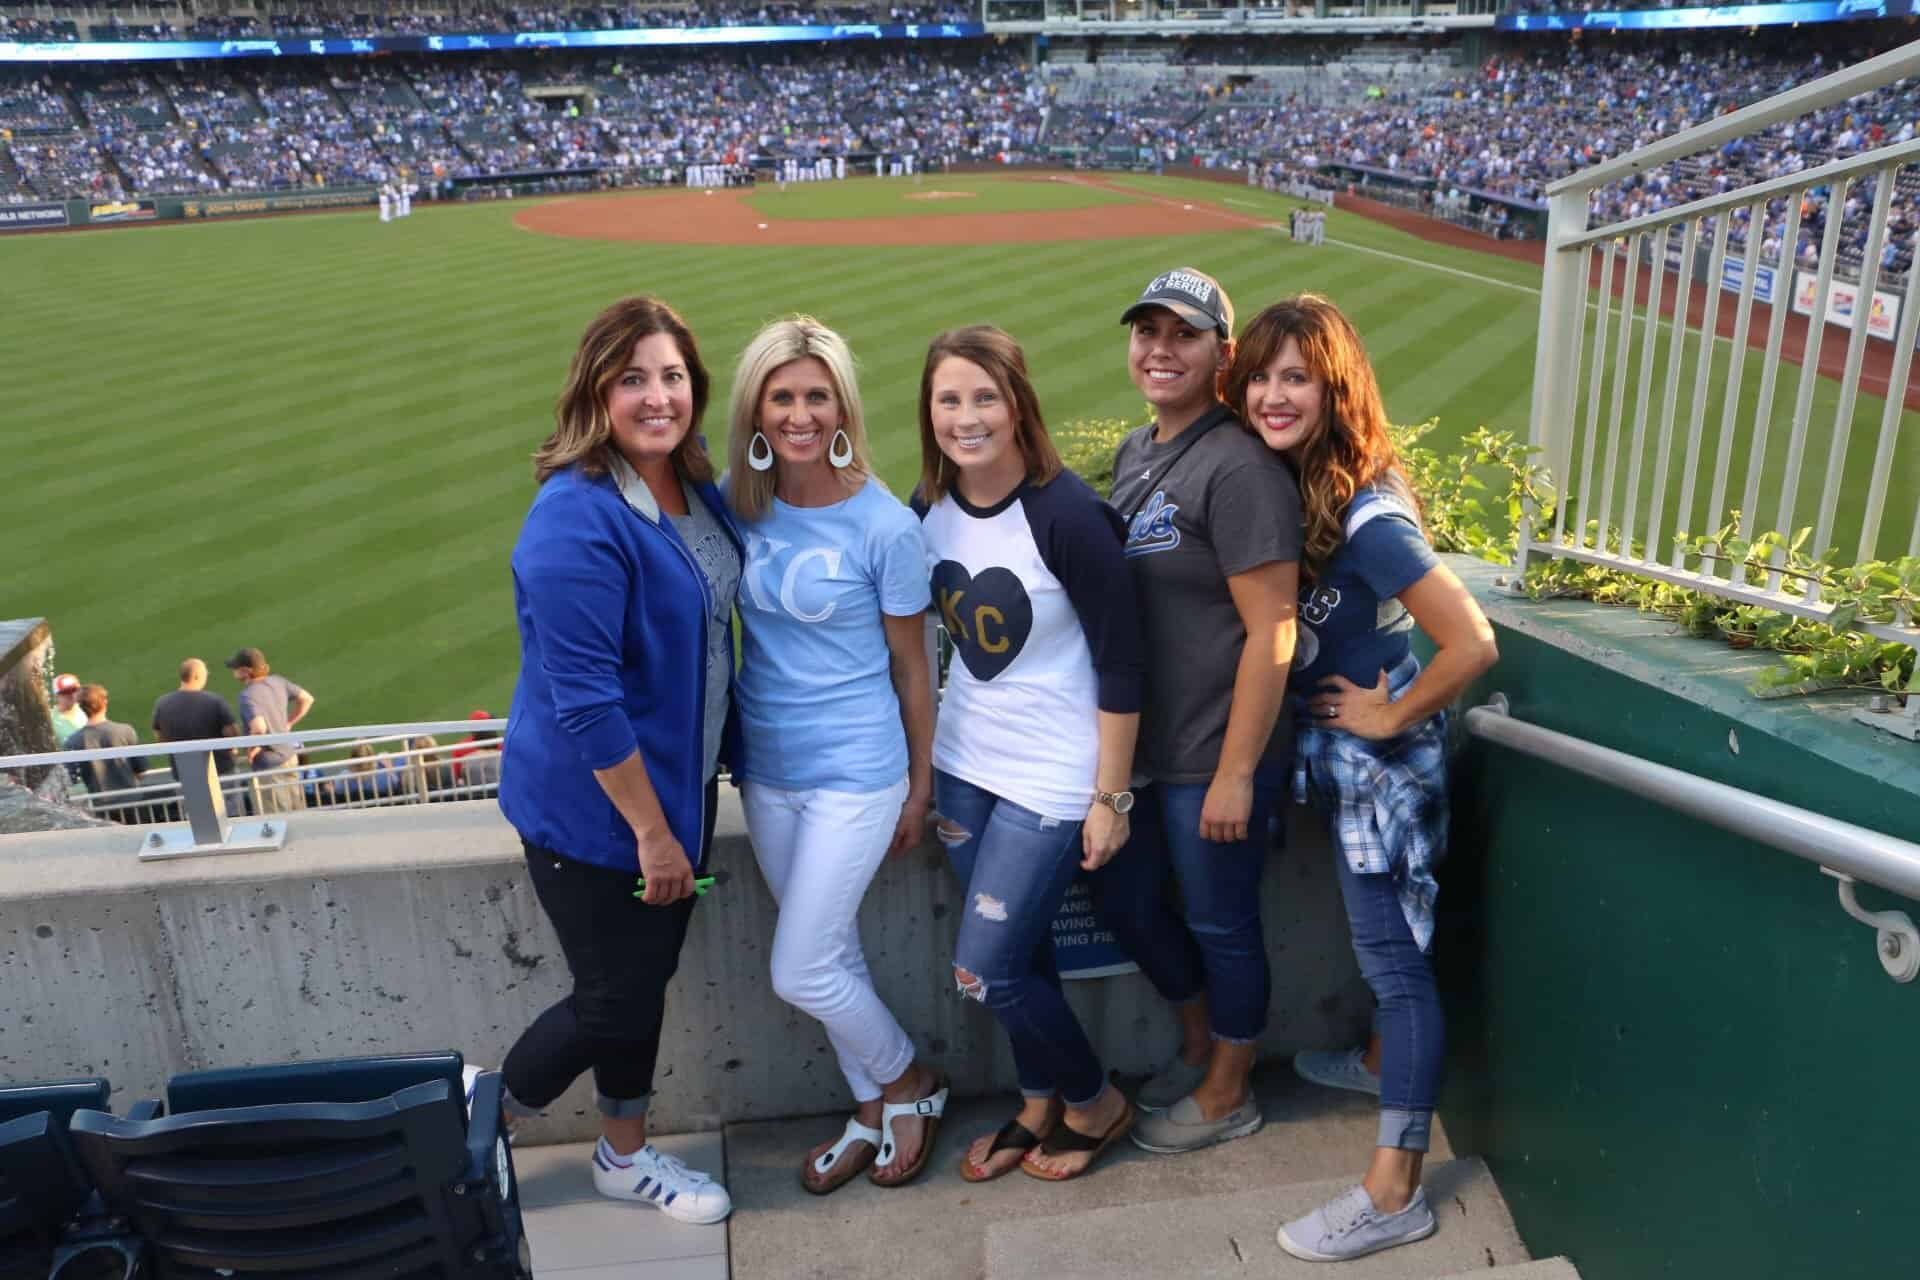 outfield-group-royals  - Braces and Invisalign in Kansas City, Overland Park, Olathe, and Paola, Kansas - Oltjen Orthodontics